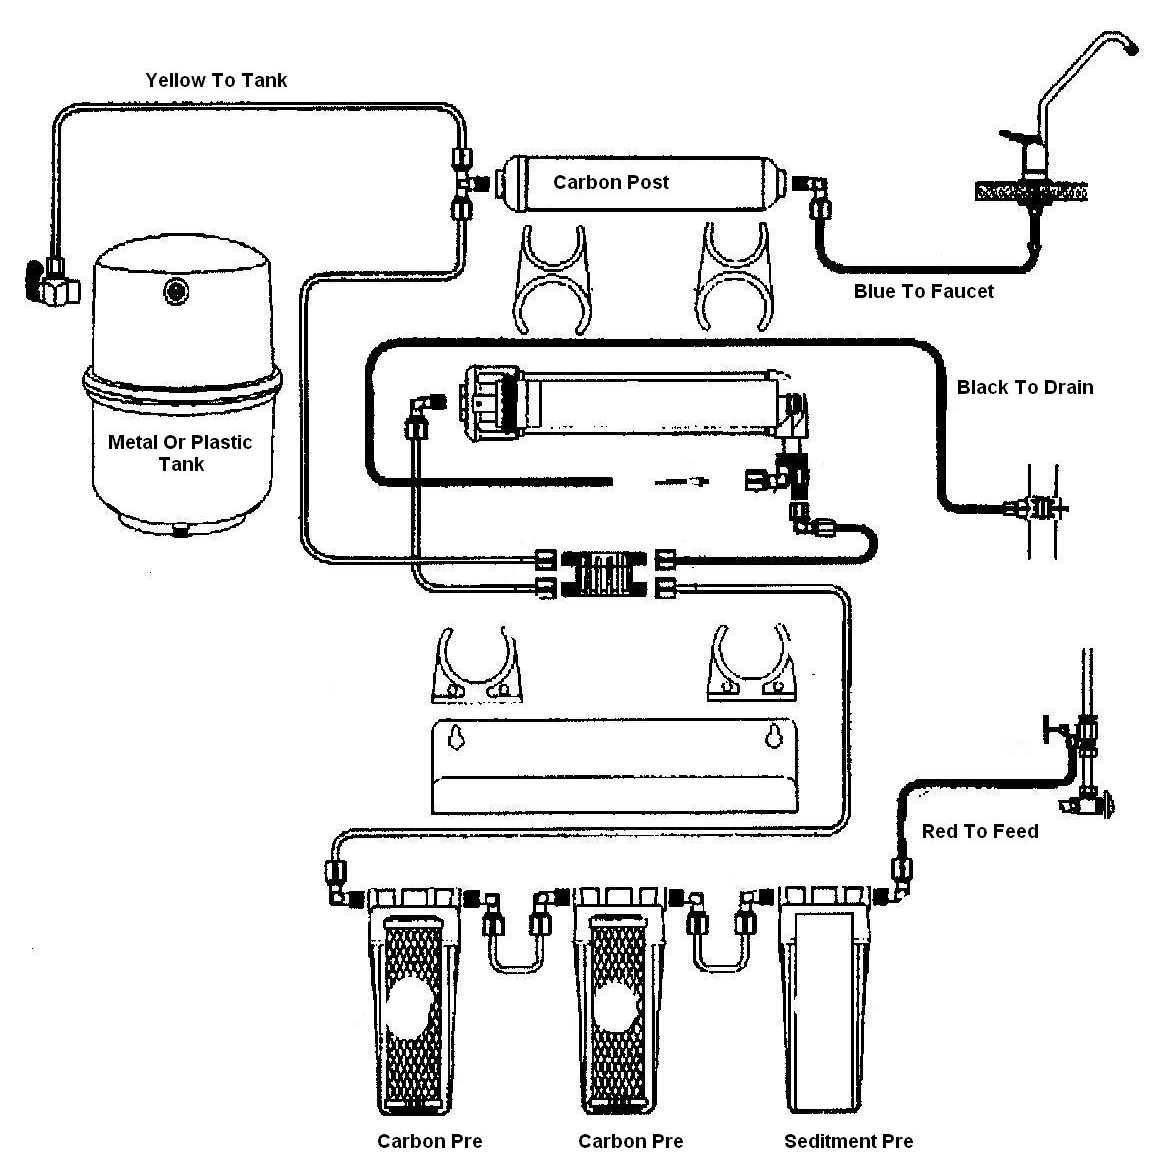 Pipe Schematic